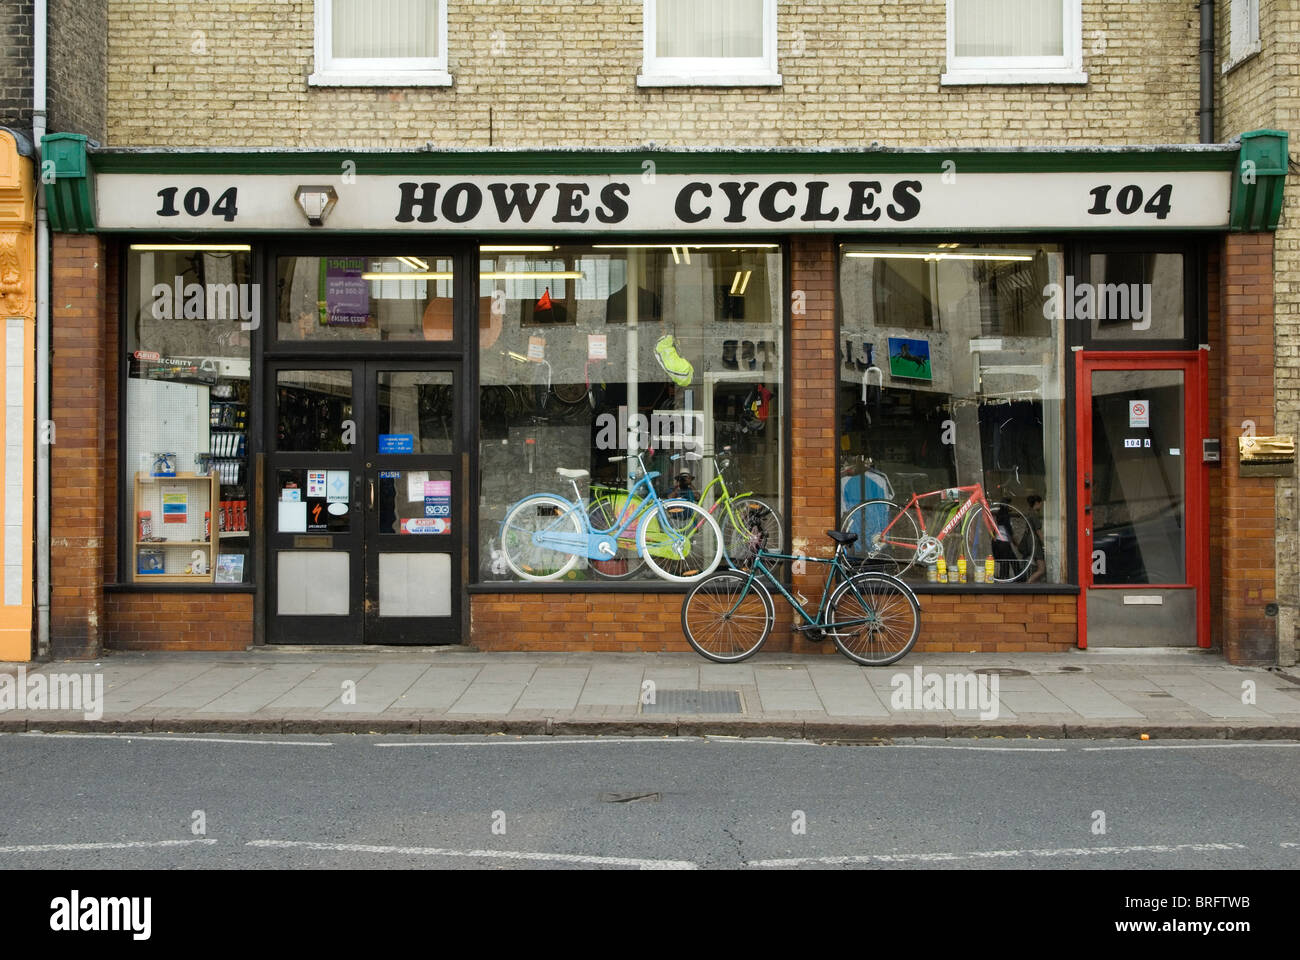 The long-established Howes Cycles shop in Cambridge, England - Stock Image